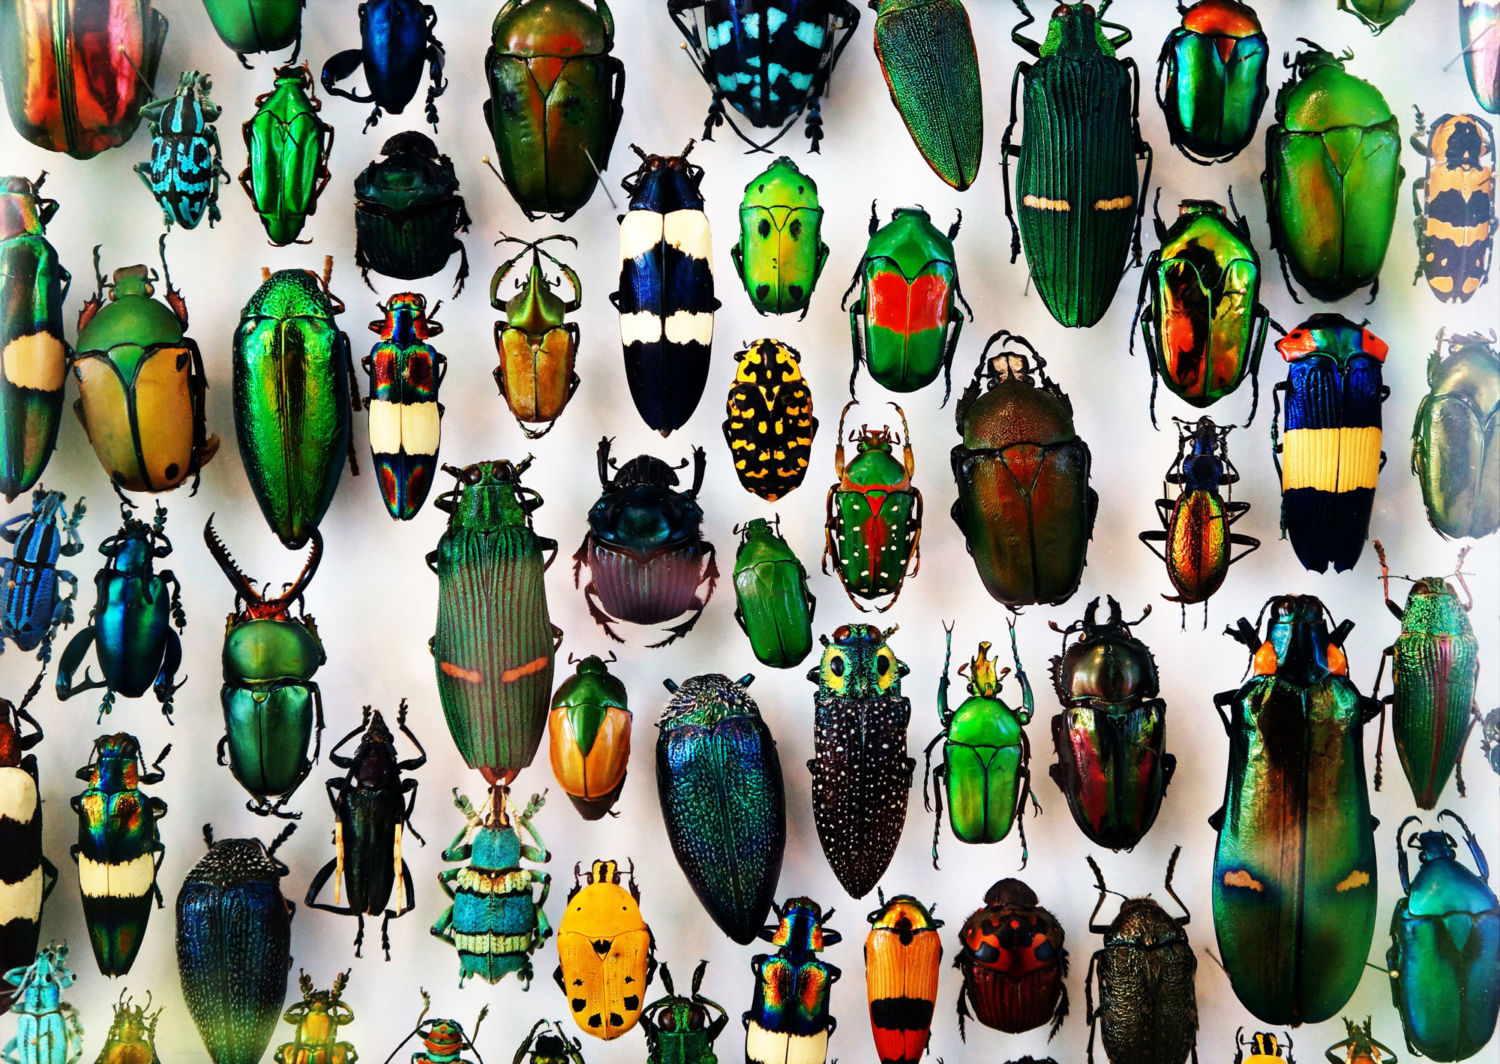 In Defense Of Biodiversity Why Protecting Species From